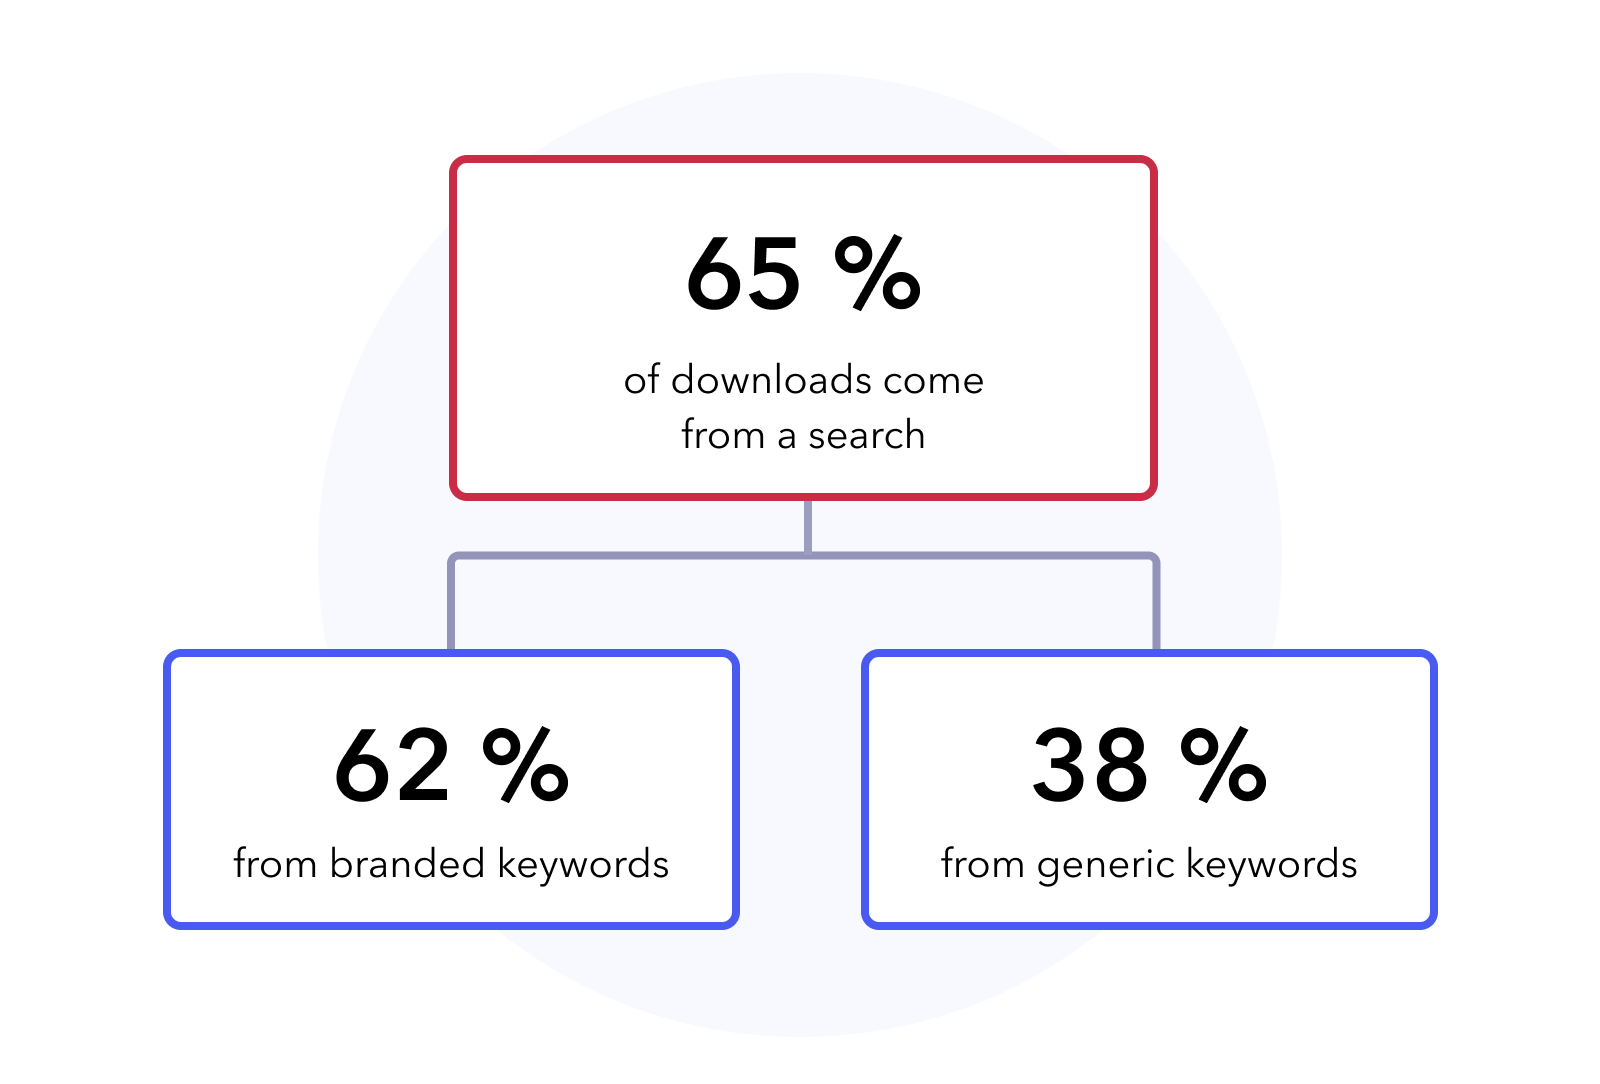 65% of all app downloads come from a search